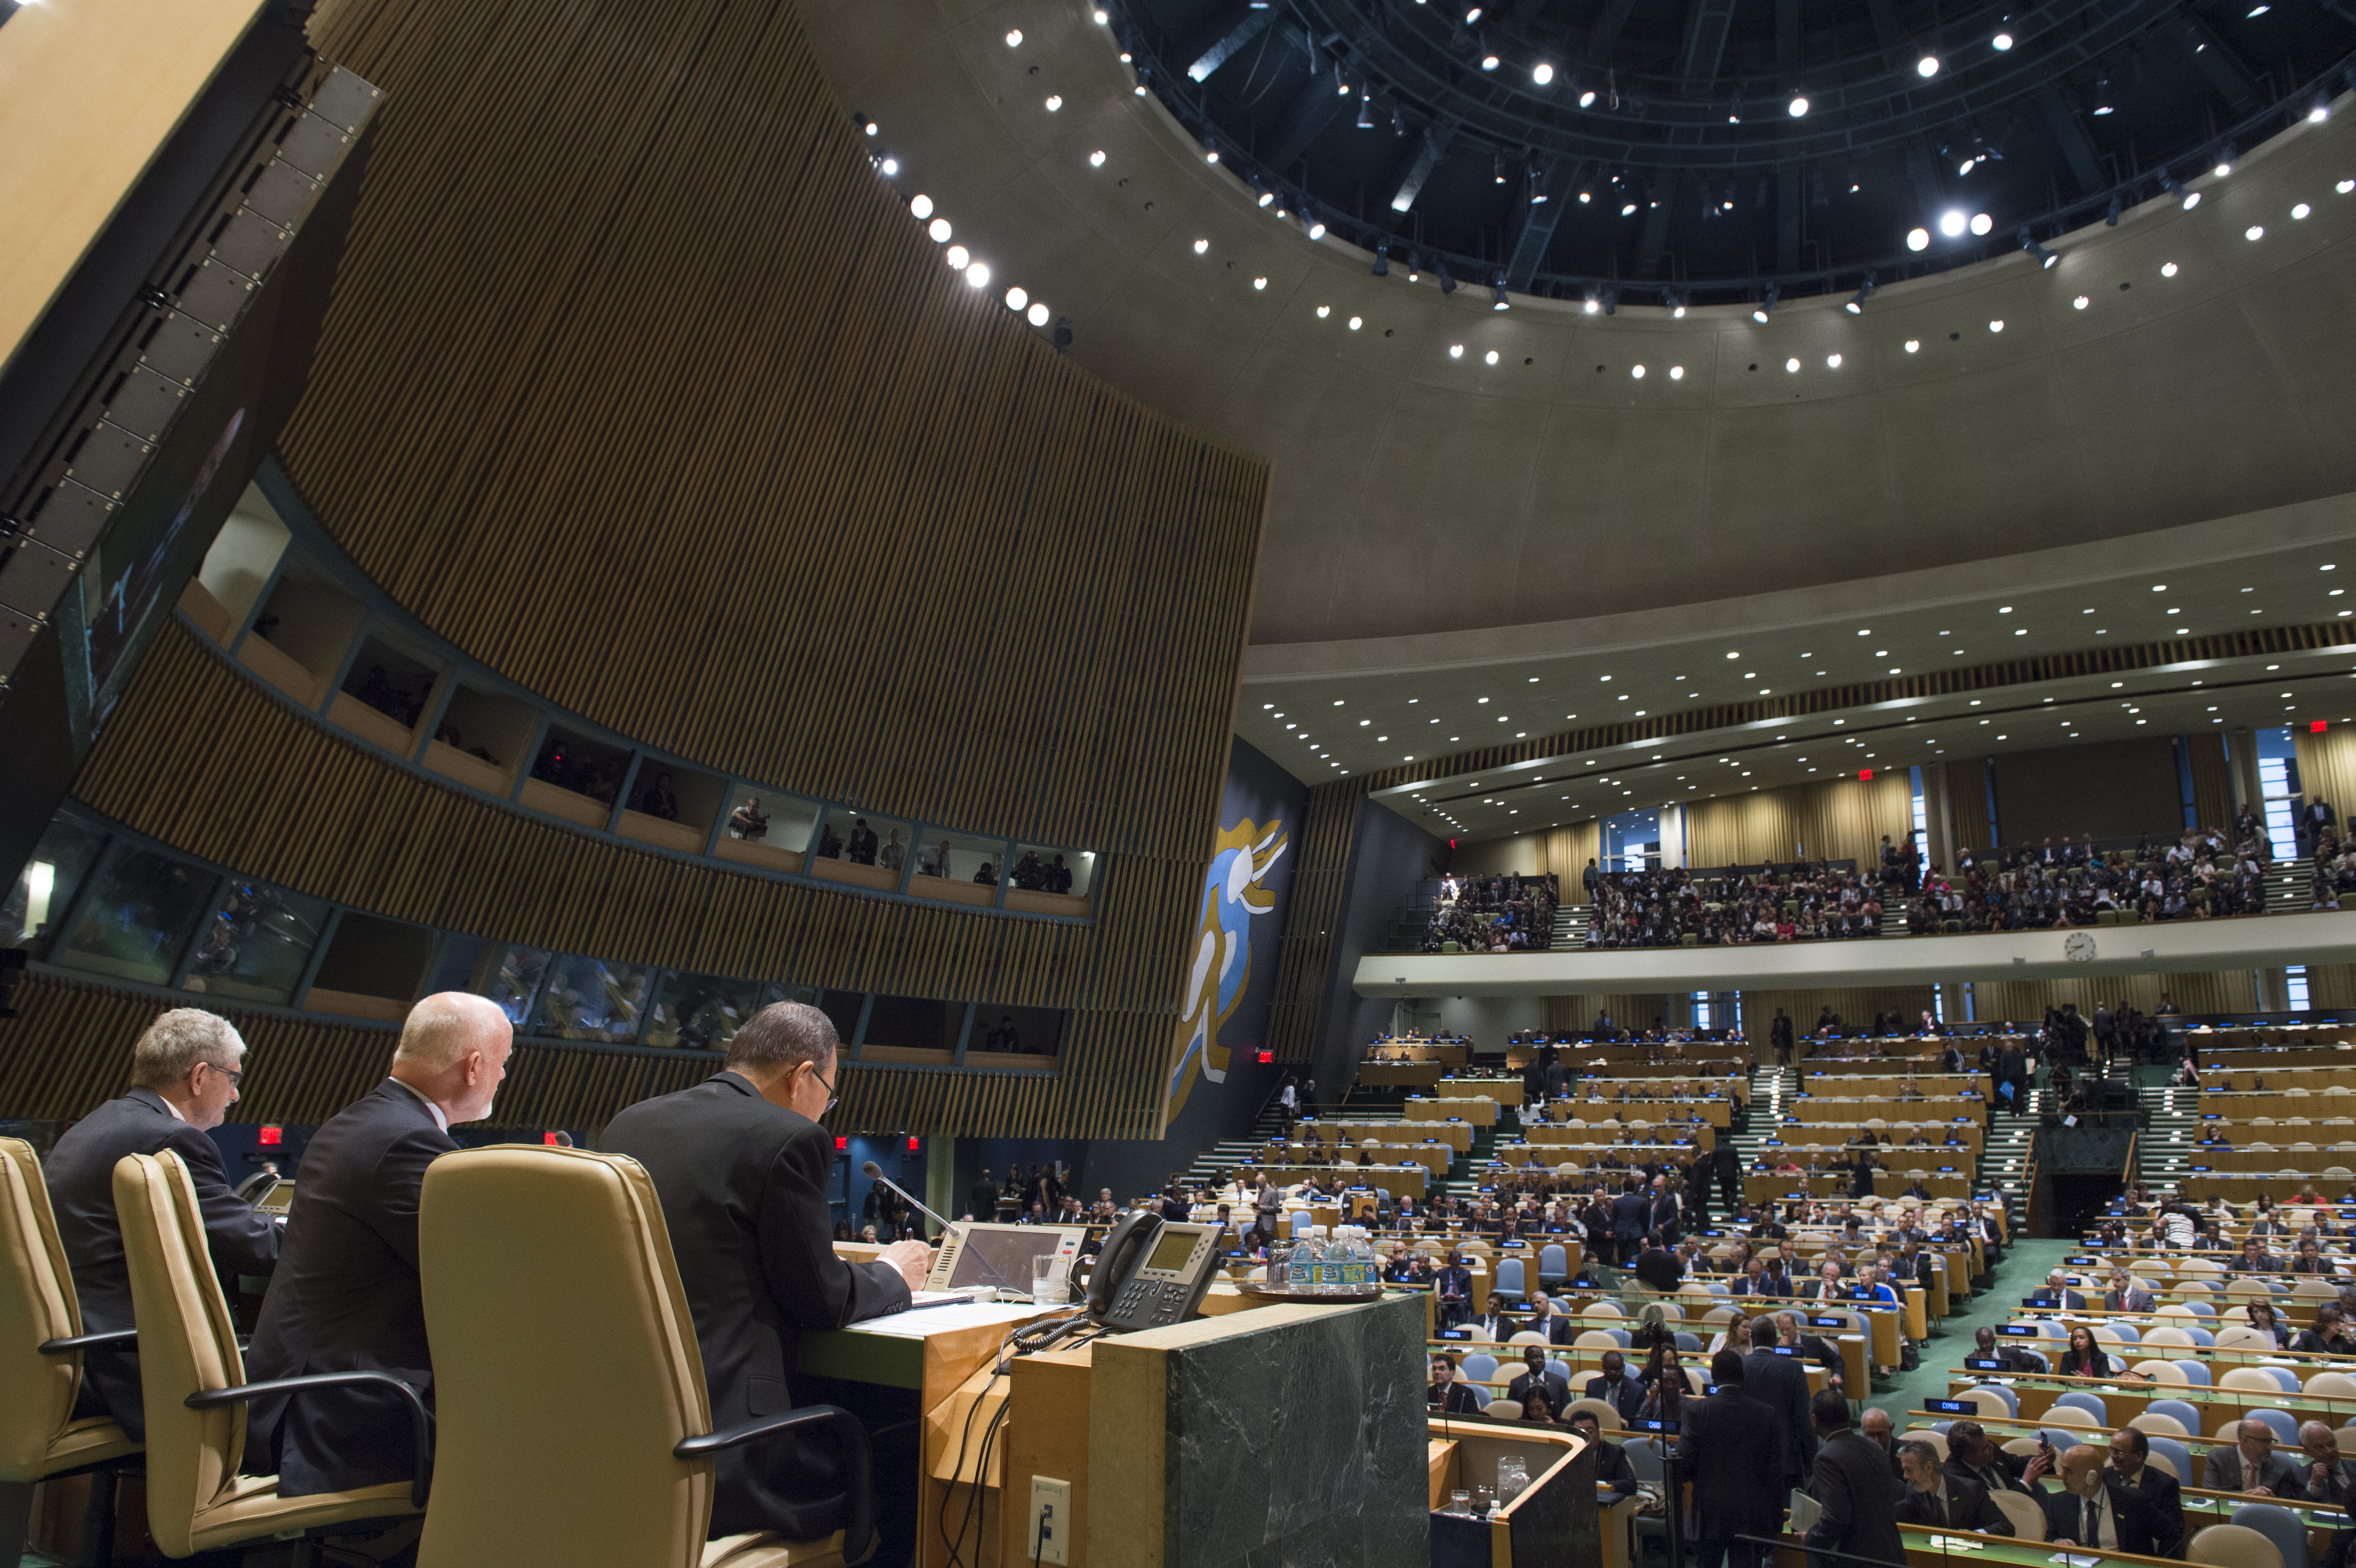 Opening of High-level plenary meeting on addressing large movements of refugees and migrants.